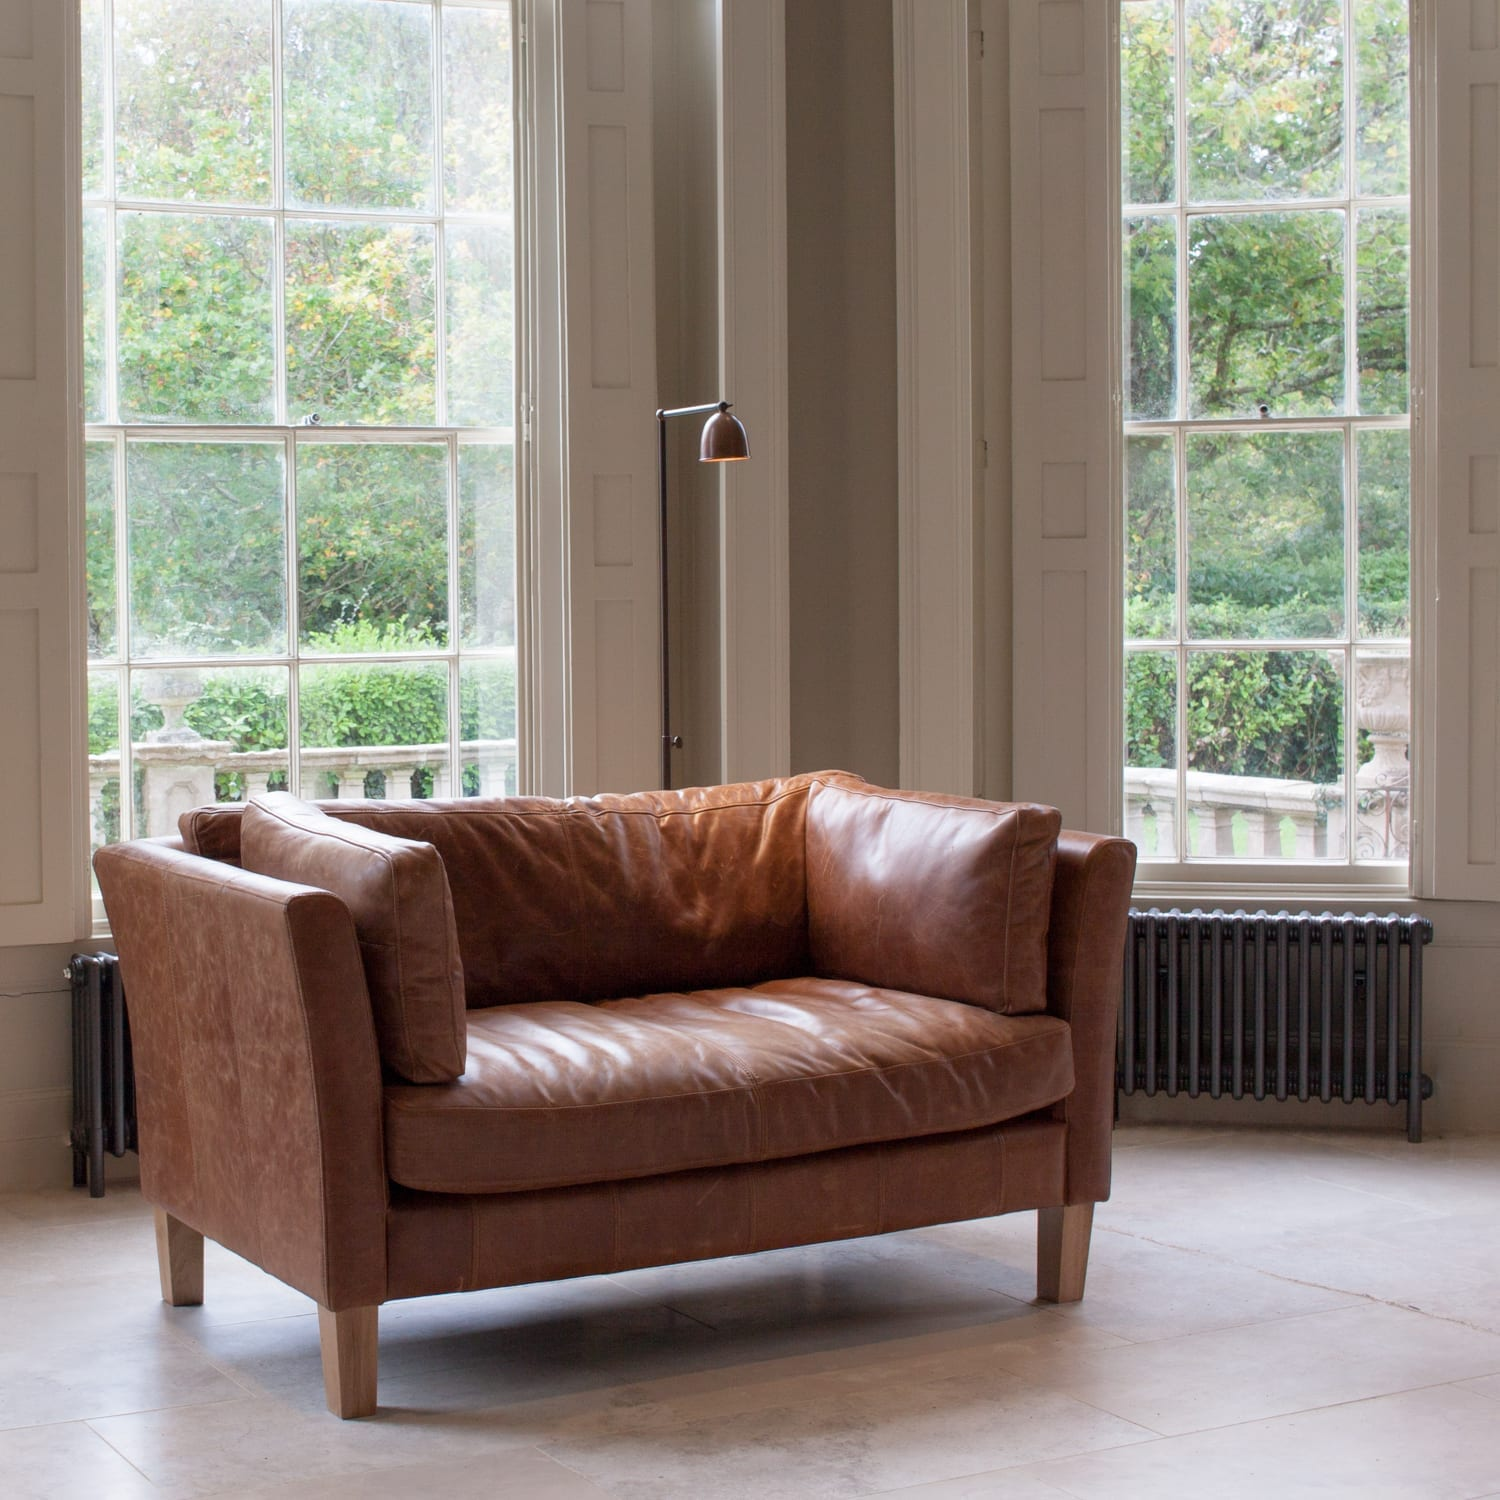 Picture of: Croft Italian Tan Leather Two Seater Sofa Sofa Furniture Willow Lifestyle